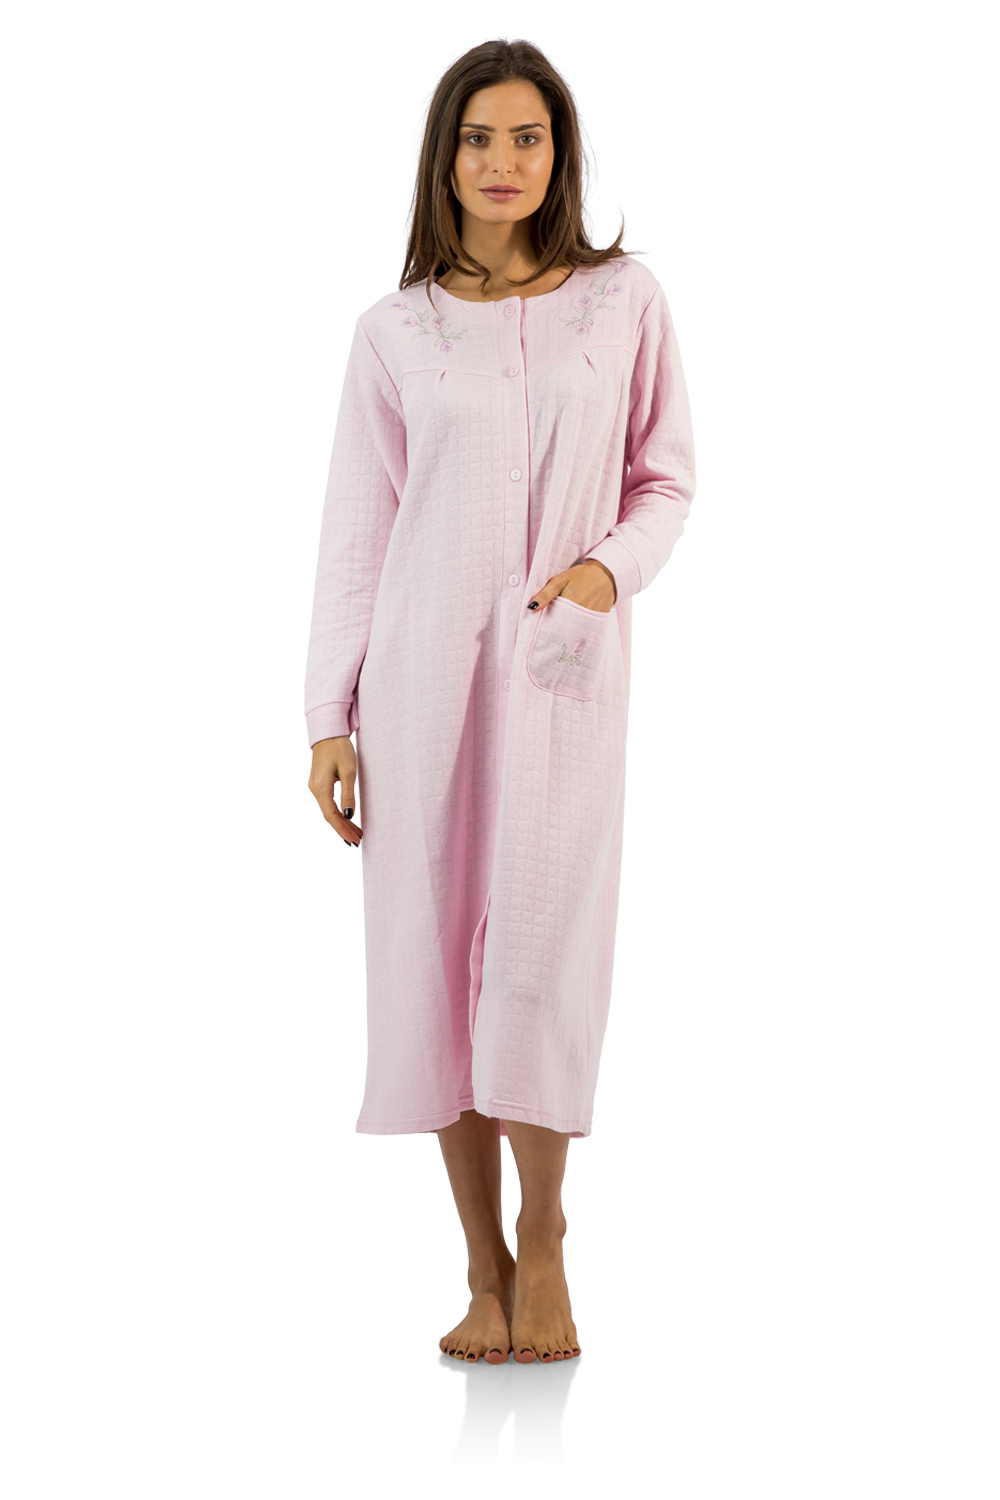 Casual Nights Women's Long Quilted Robe House Dress - Pink - X-Large